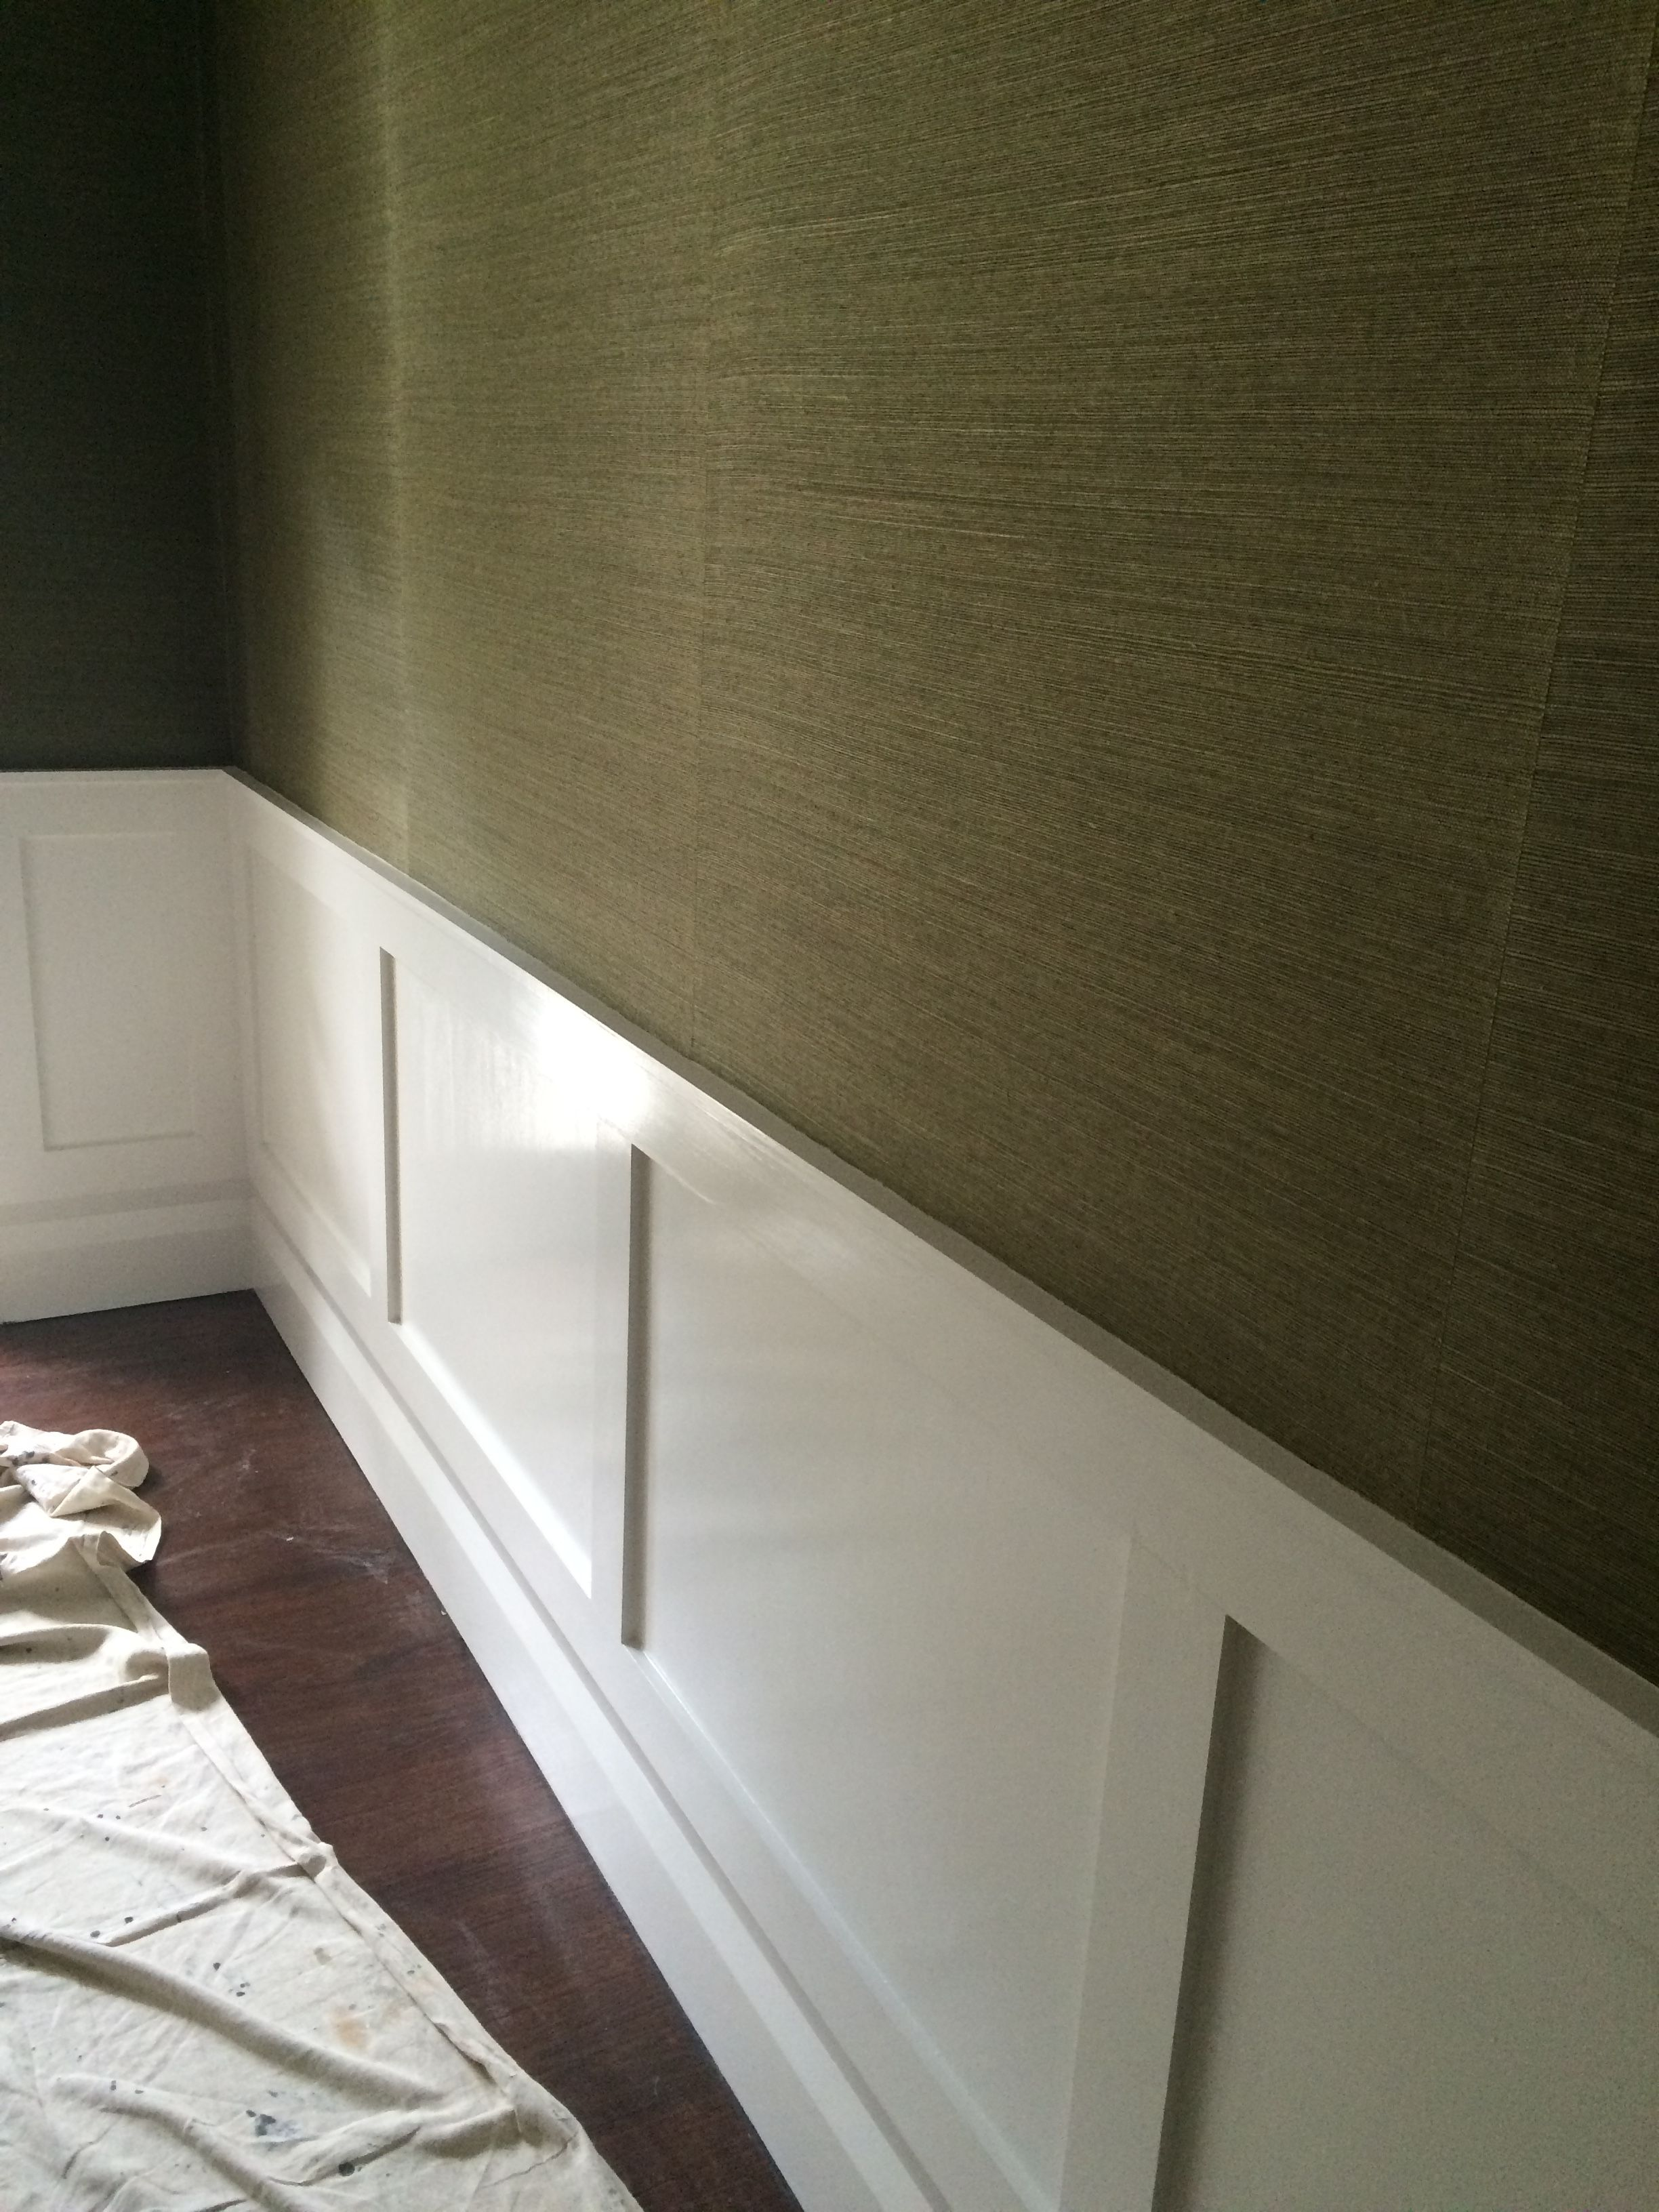 office wainscoting ideas. When Doing Darker Colors, Grass Cloth Always Works Better Than Paint. Office Wainscoting Ideas